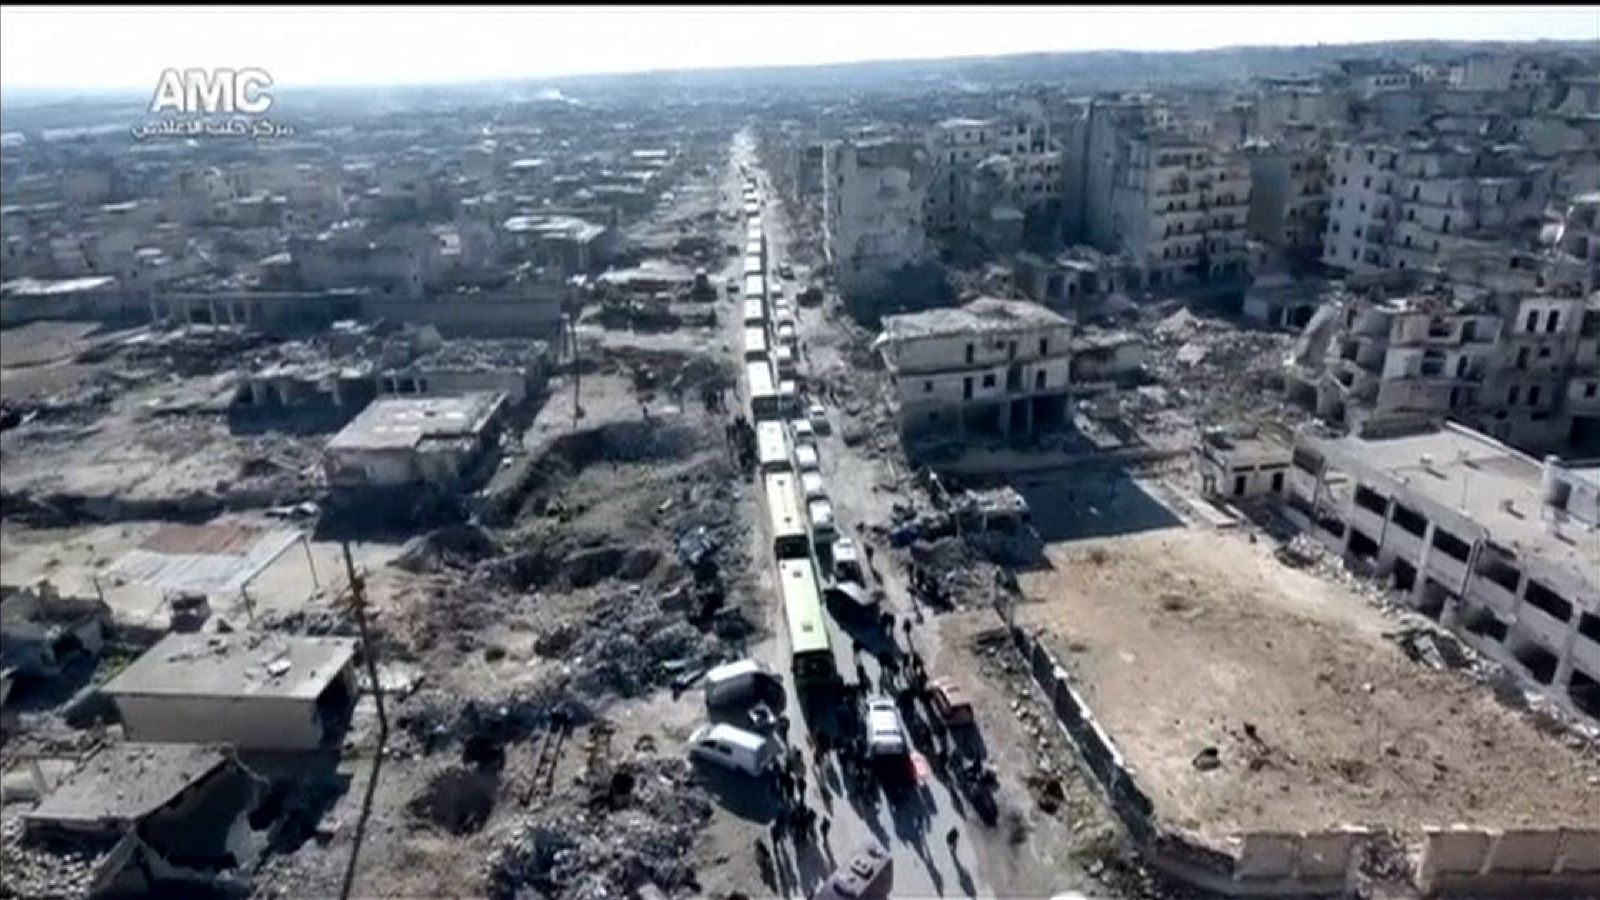 A convoy leaves Aleppo in Syria